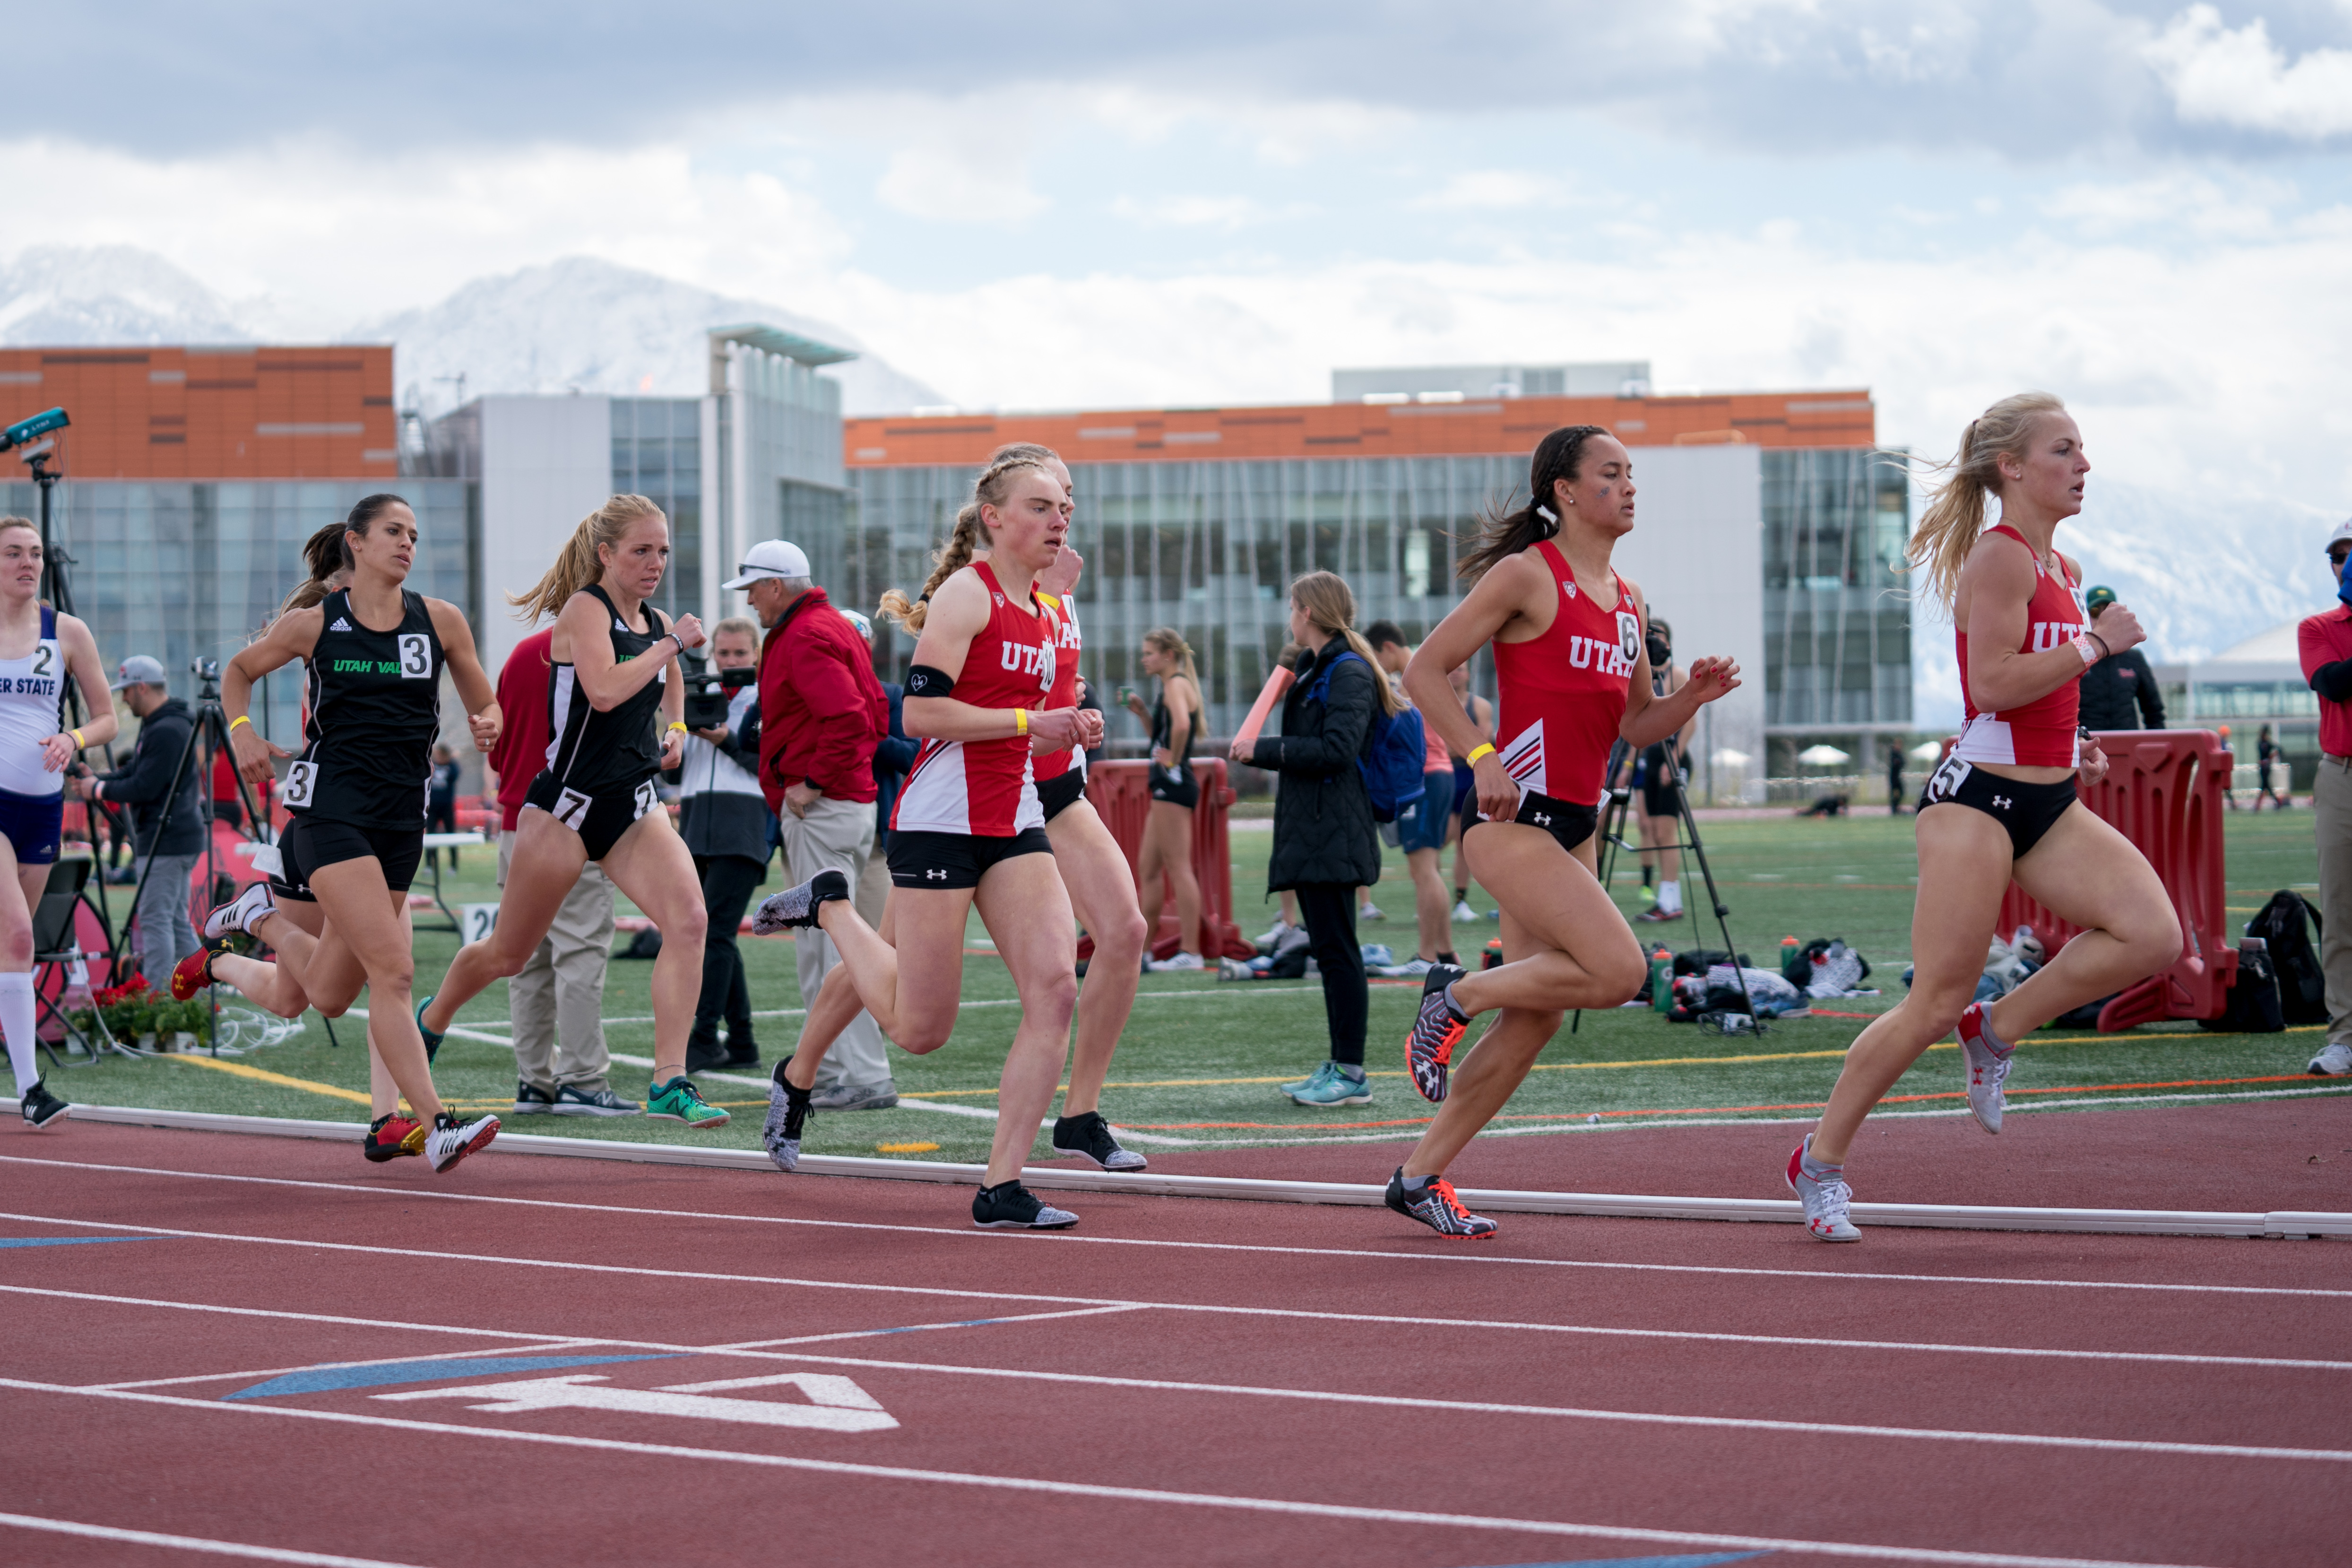 Sarah Feeny competes in the Utah Track and Field Spring Classic April 13, 2019, in Salt Lake City, UT.